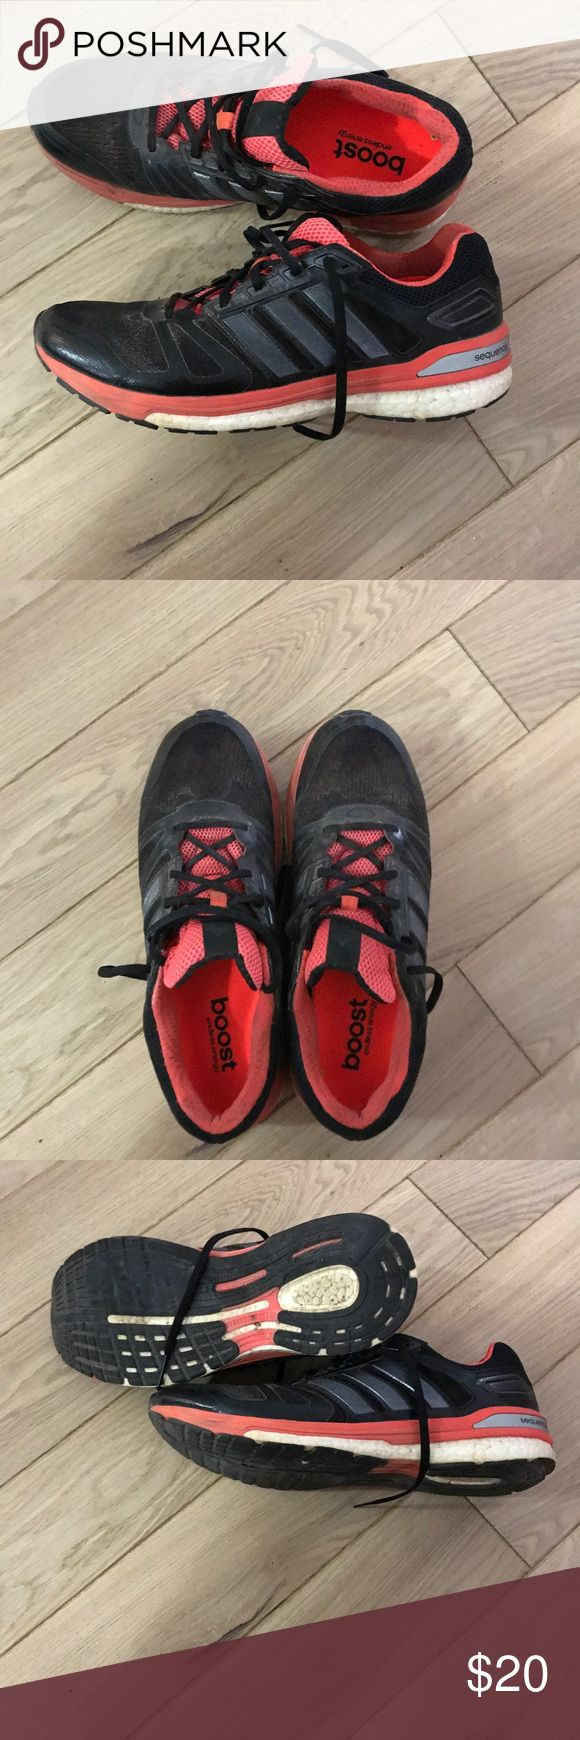 Adidas Boost Sequence Running Shoes- Size 11 Good condition Adidas Boost Sequence Running Shoes- Size 11 adidas Shoes Sneakers https://twitter.com/ShoesEgminfmn/status/895096209521557504